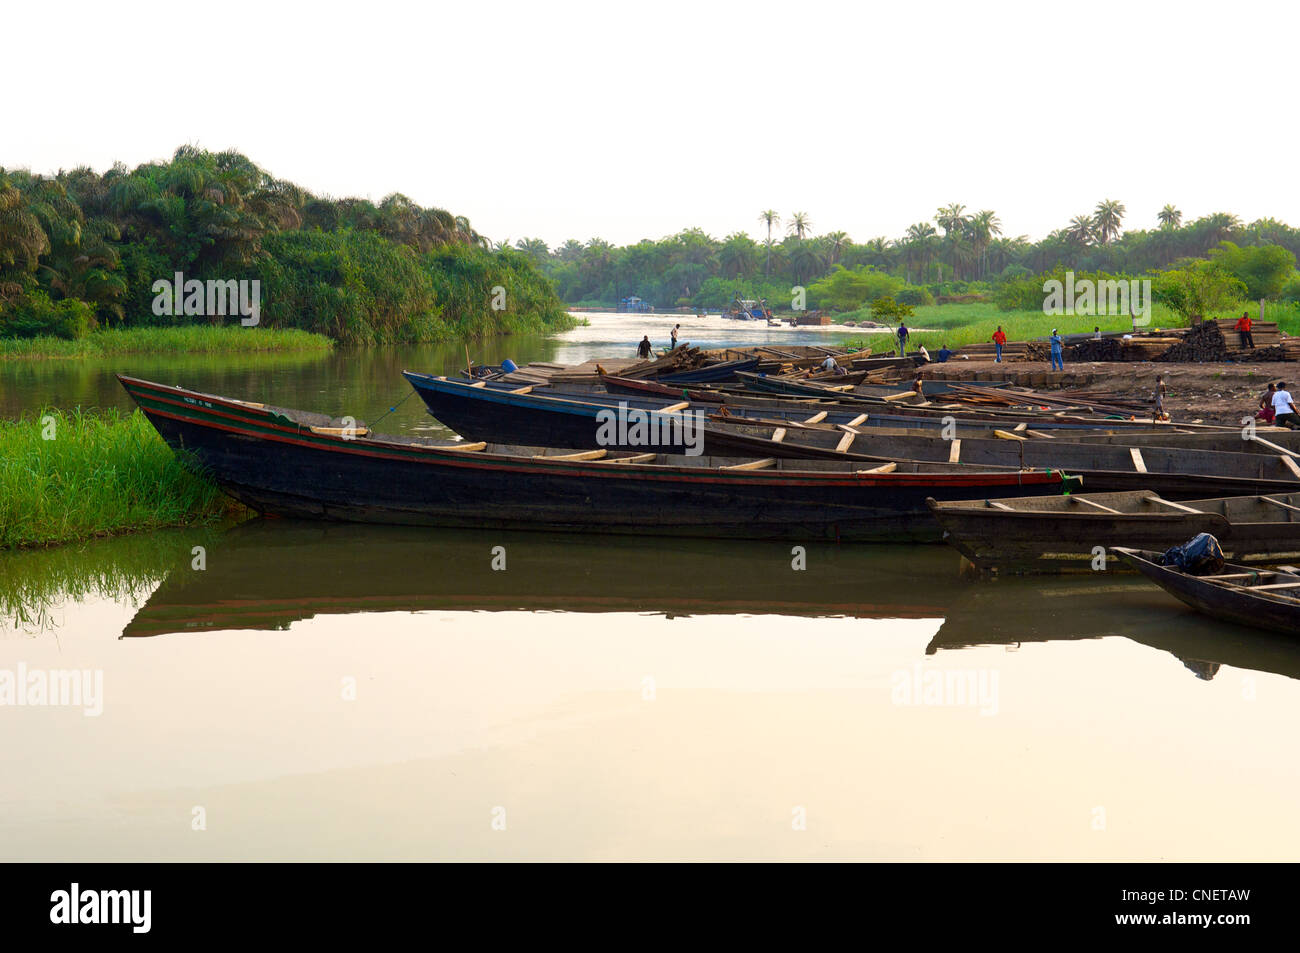 Boats on River Duem in the oil-rich Niger Delta in Nigeria - Stock Image